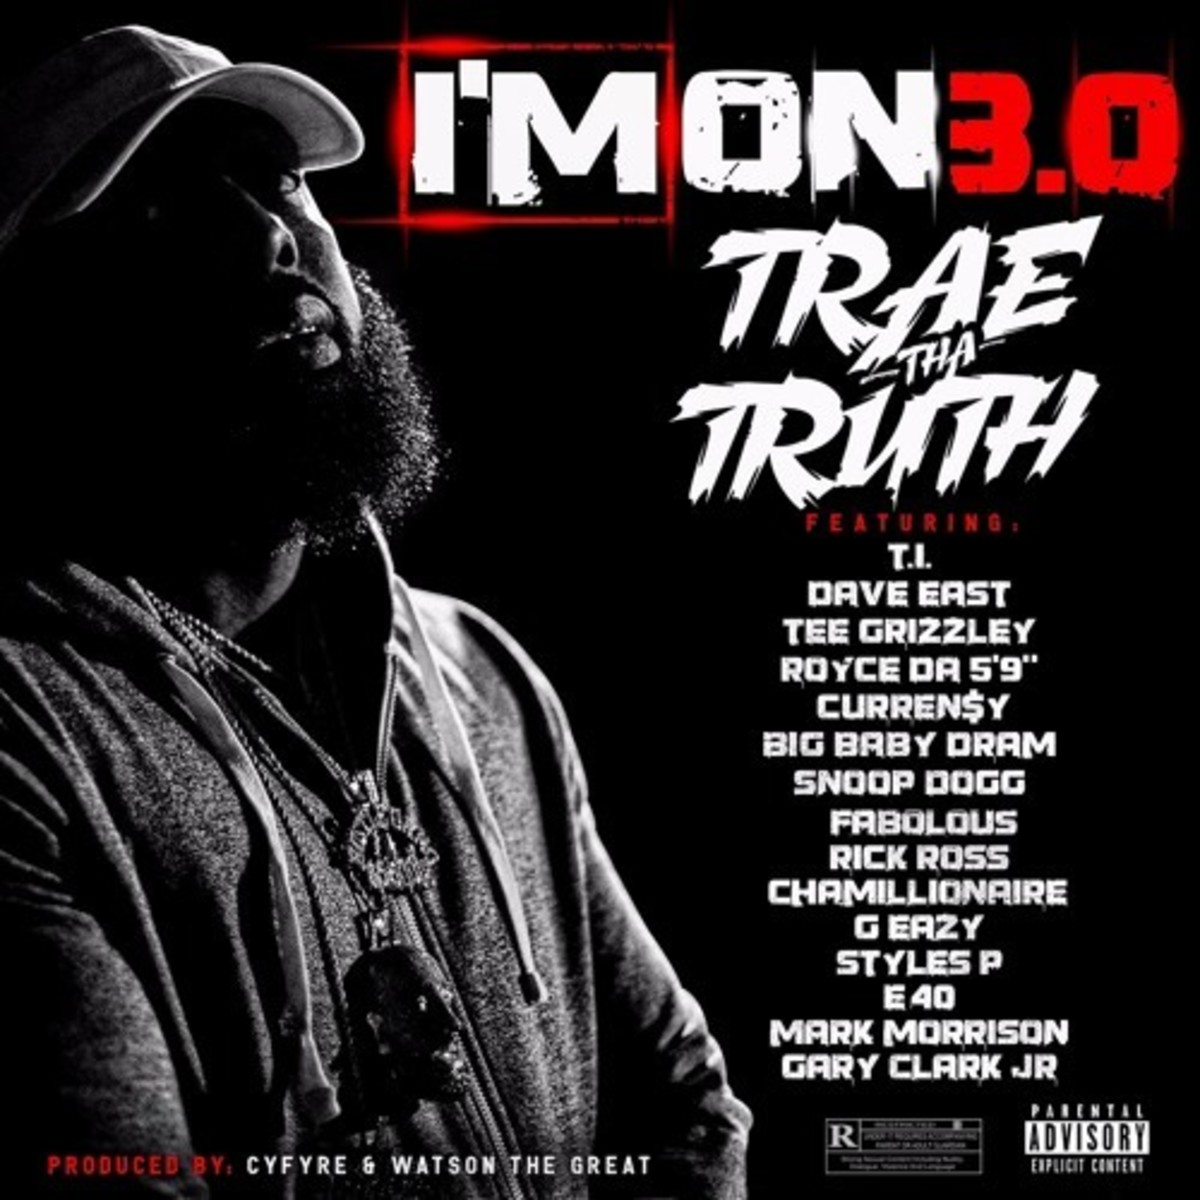 trae-tha-truth-im-on-30.jpg